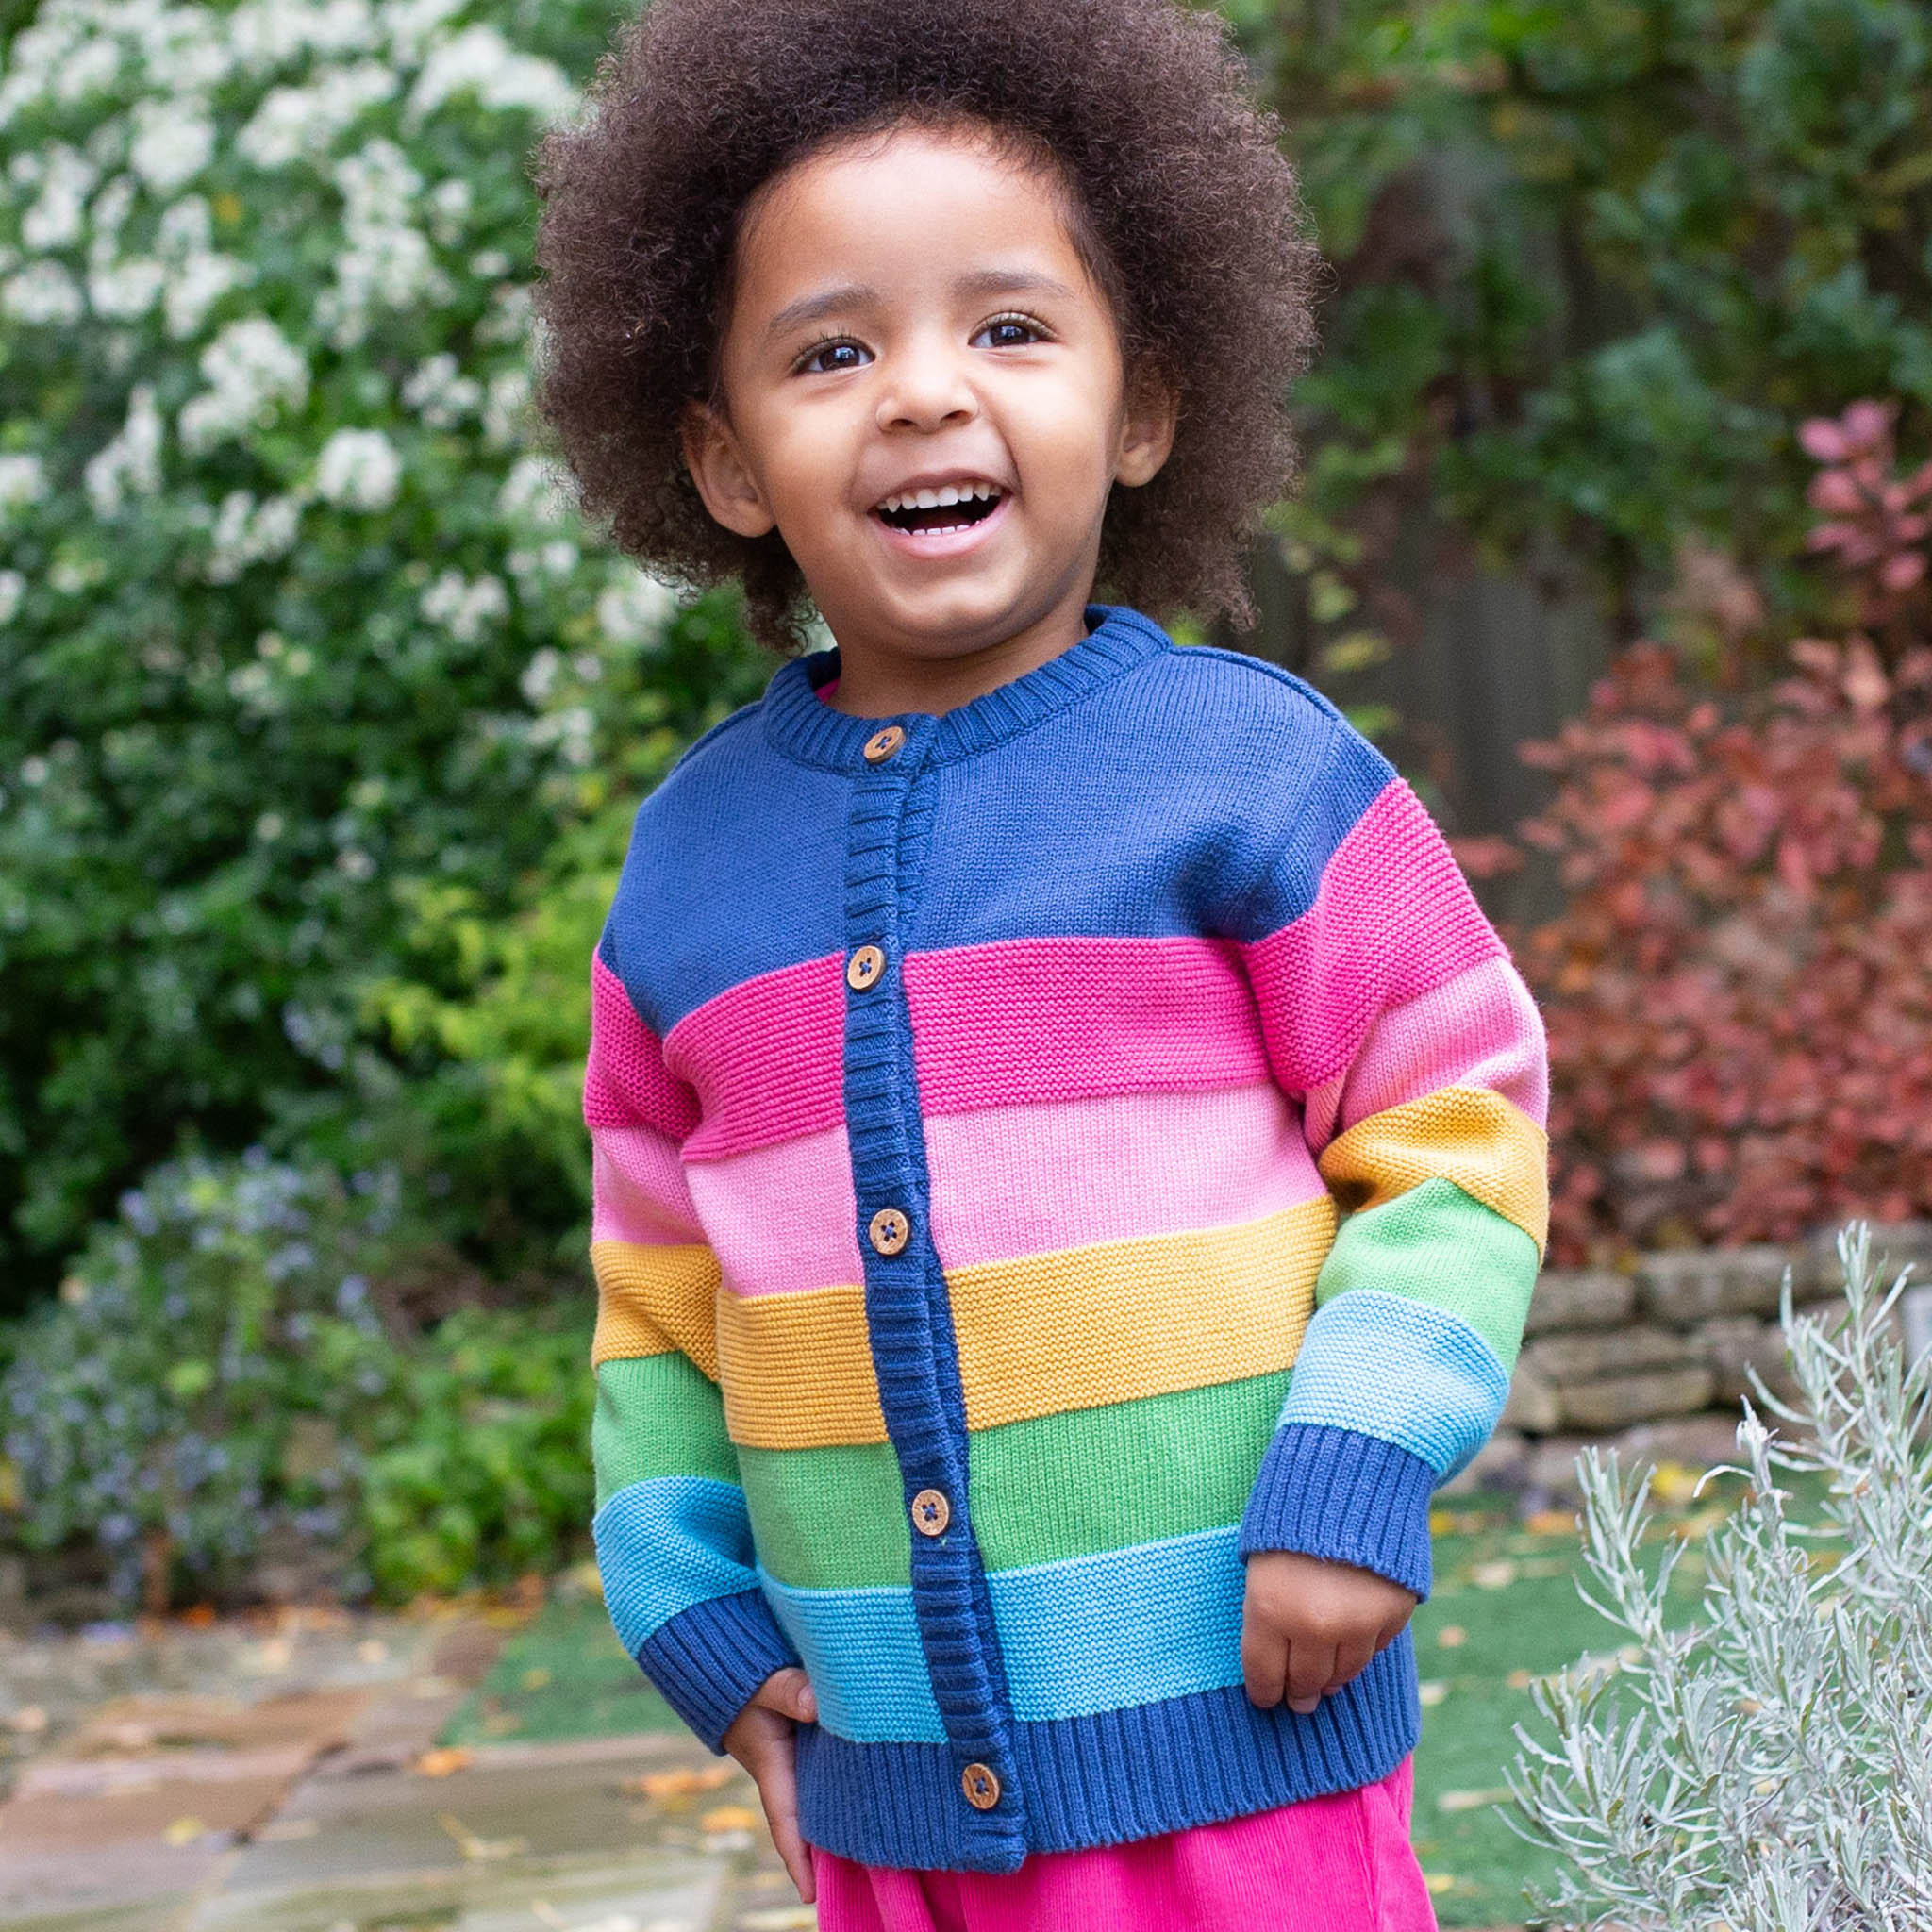 Kite Rainbow Cardigan (was £32.00)